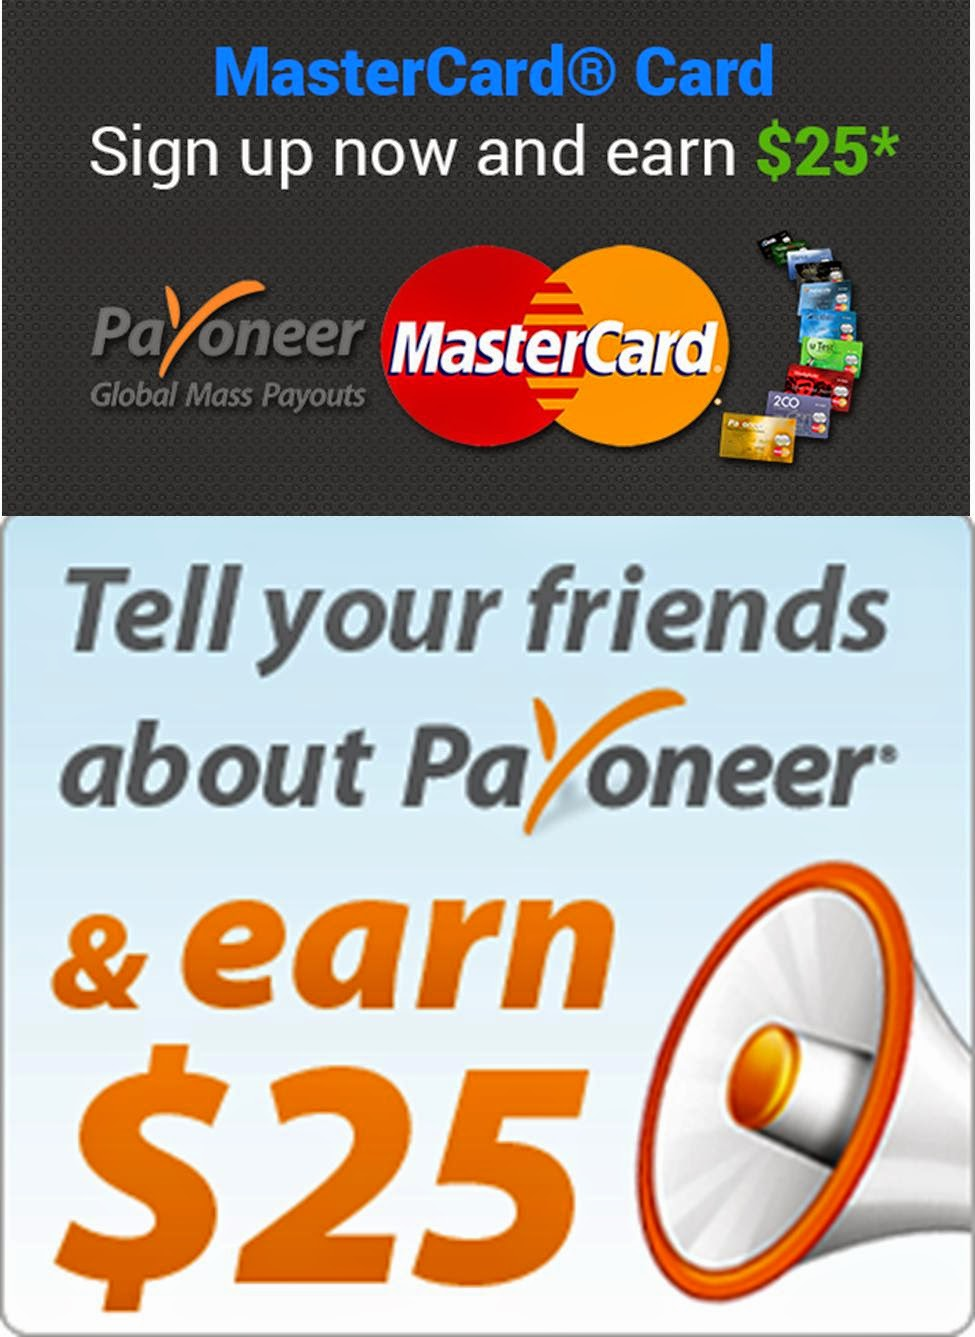 Signup with Payoneer